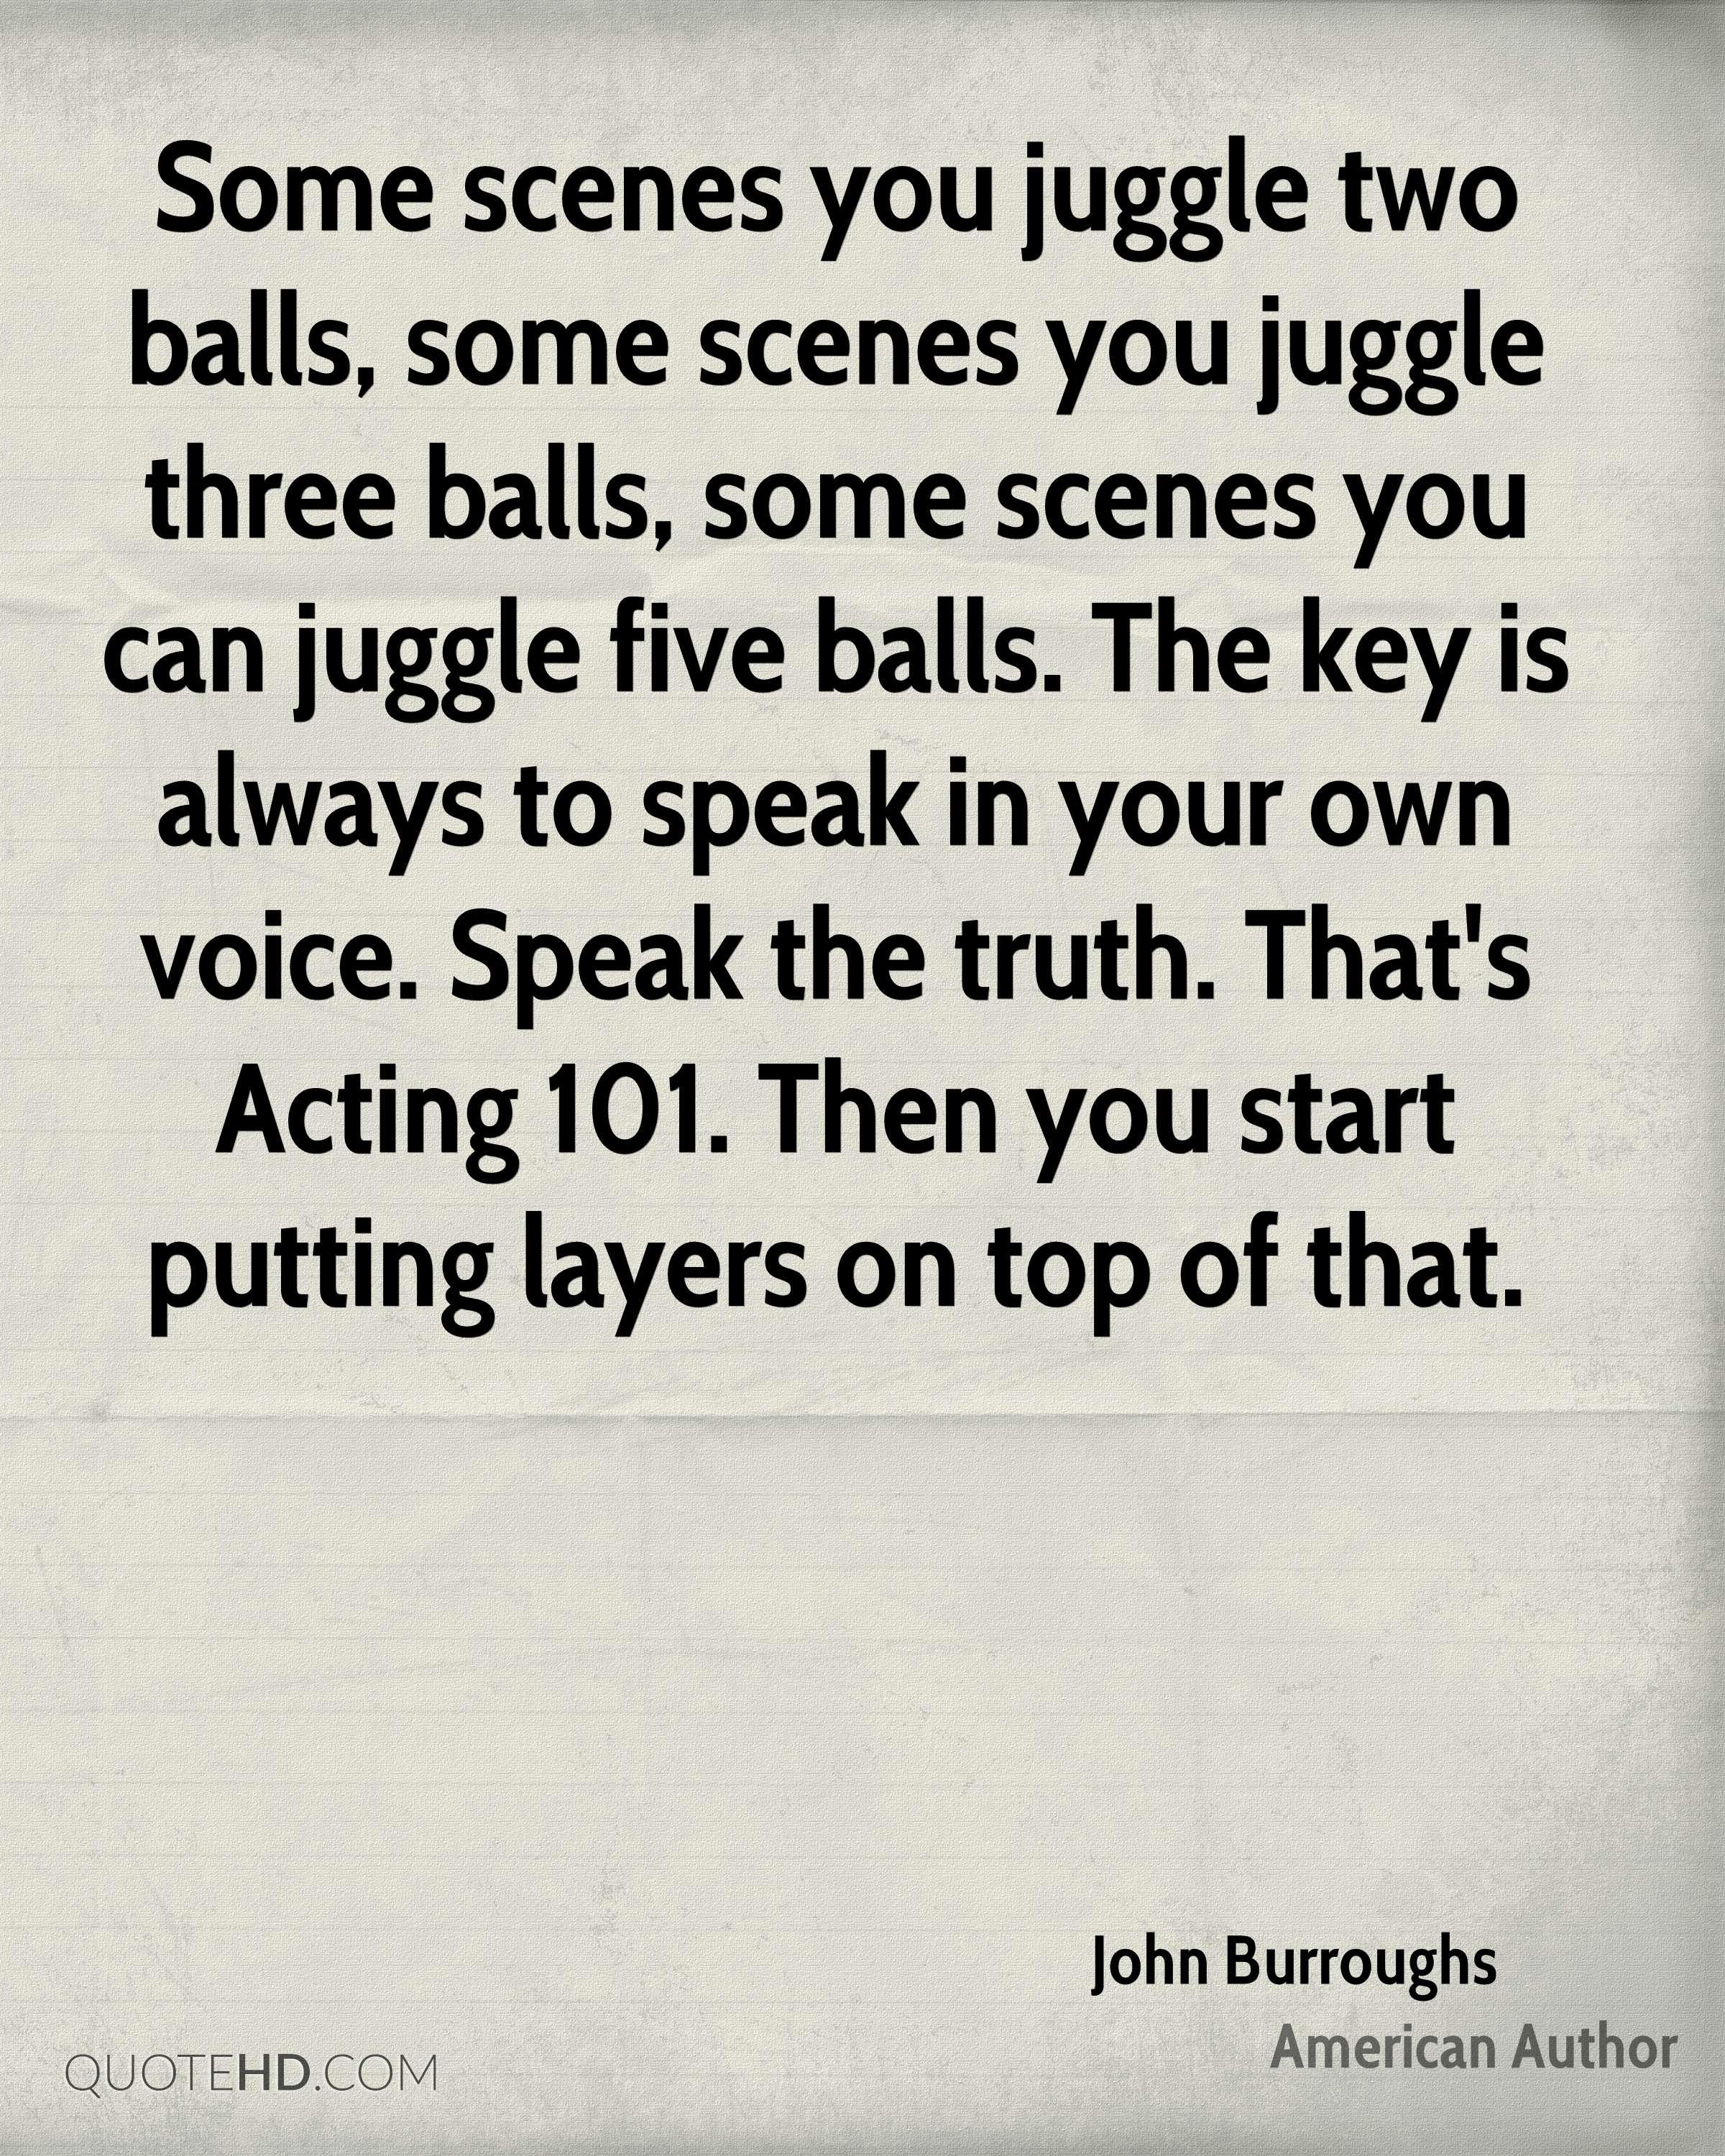 Some scenes you juggle two balls, some scenes you juggle three balls, some scenes you can juggle five balls. The key is always to speak in your own voice. Speak the truth. That's Acting 101. Then you start putting layers on top of that.